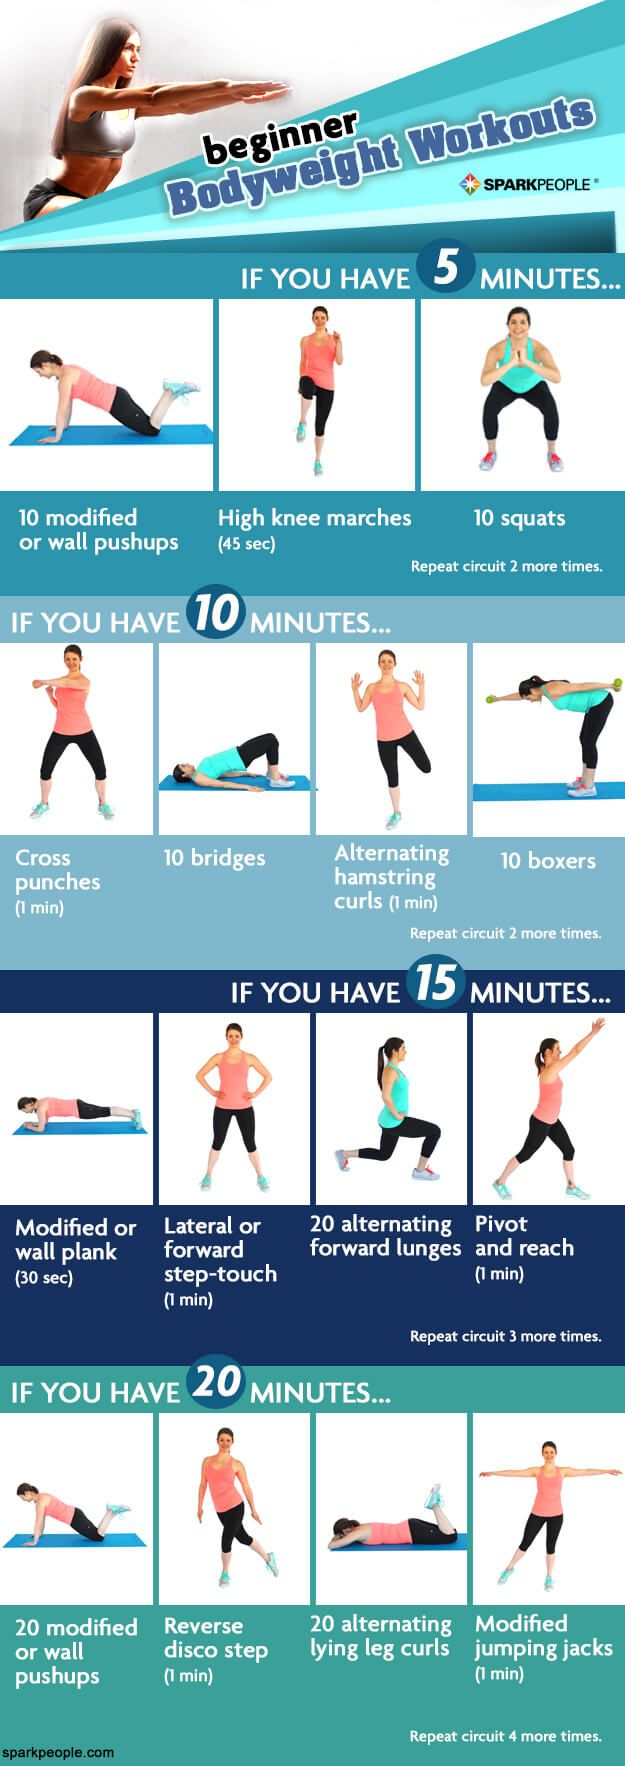 Get the biggest bang for your bodyweight buck with these beginner workouts. You can get in a workout in 5, 10, 15 or 20 minutes! YOU CAN DO IT!